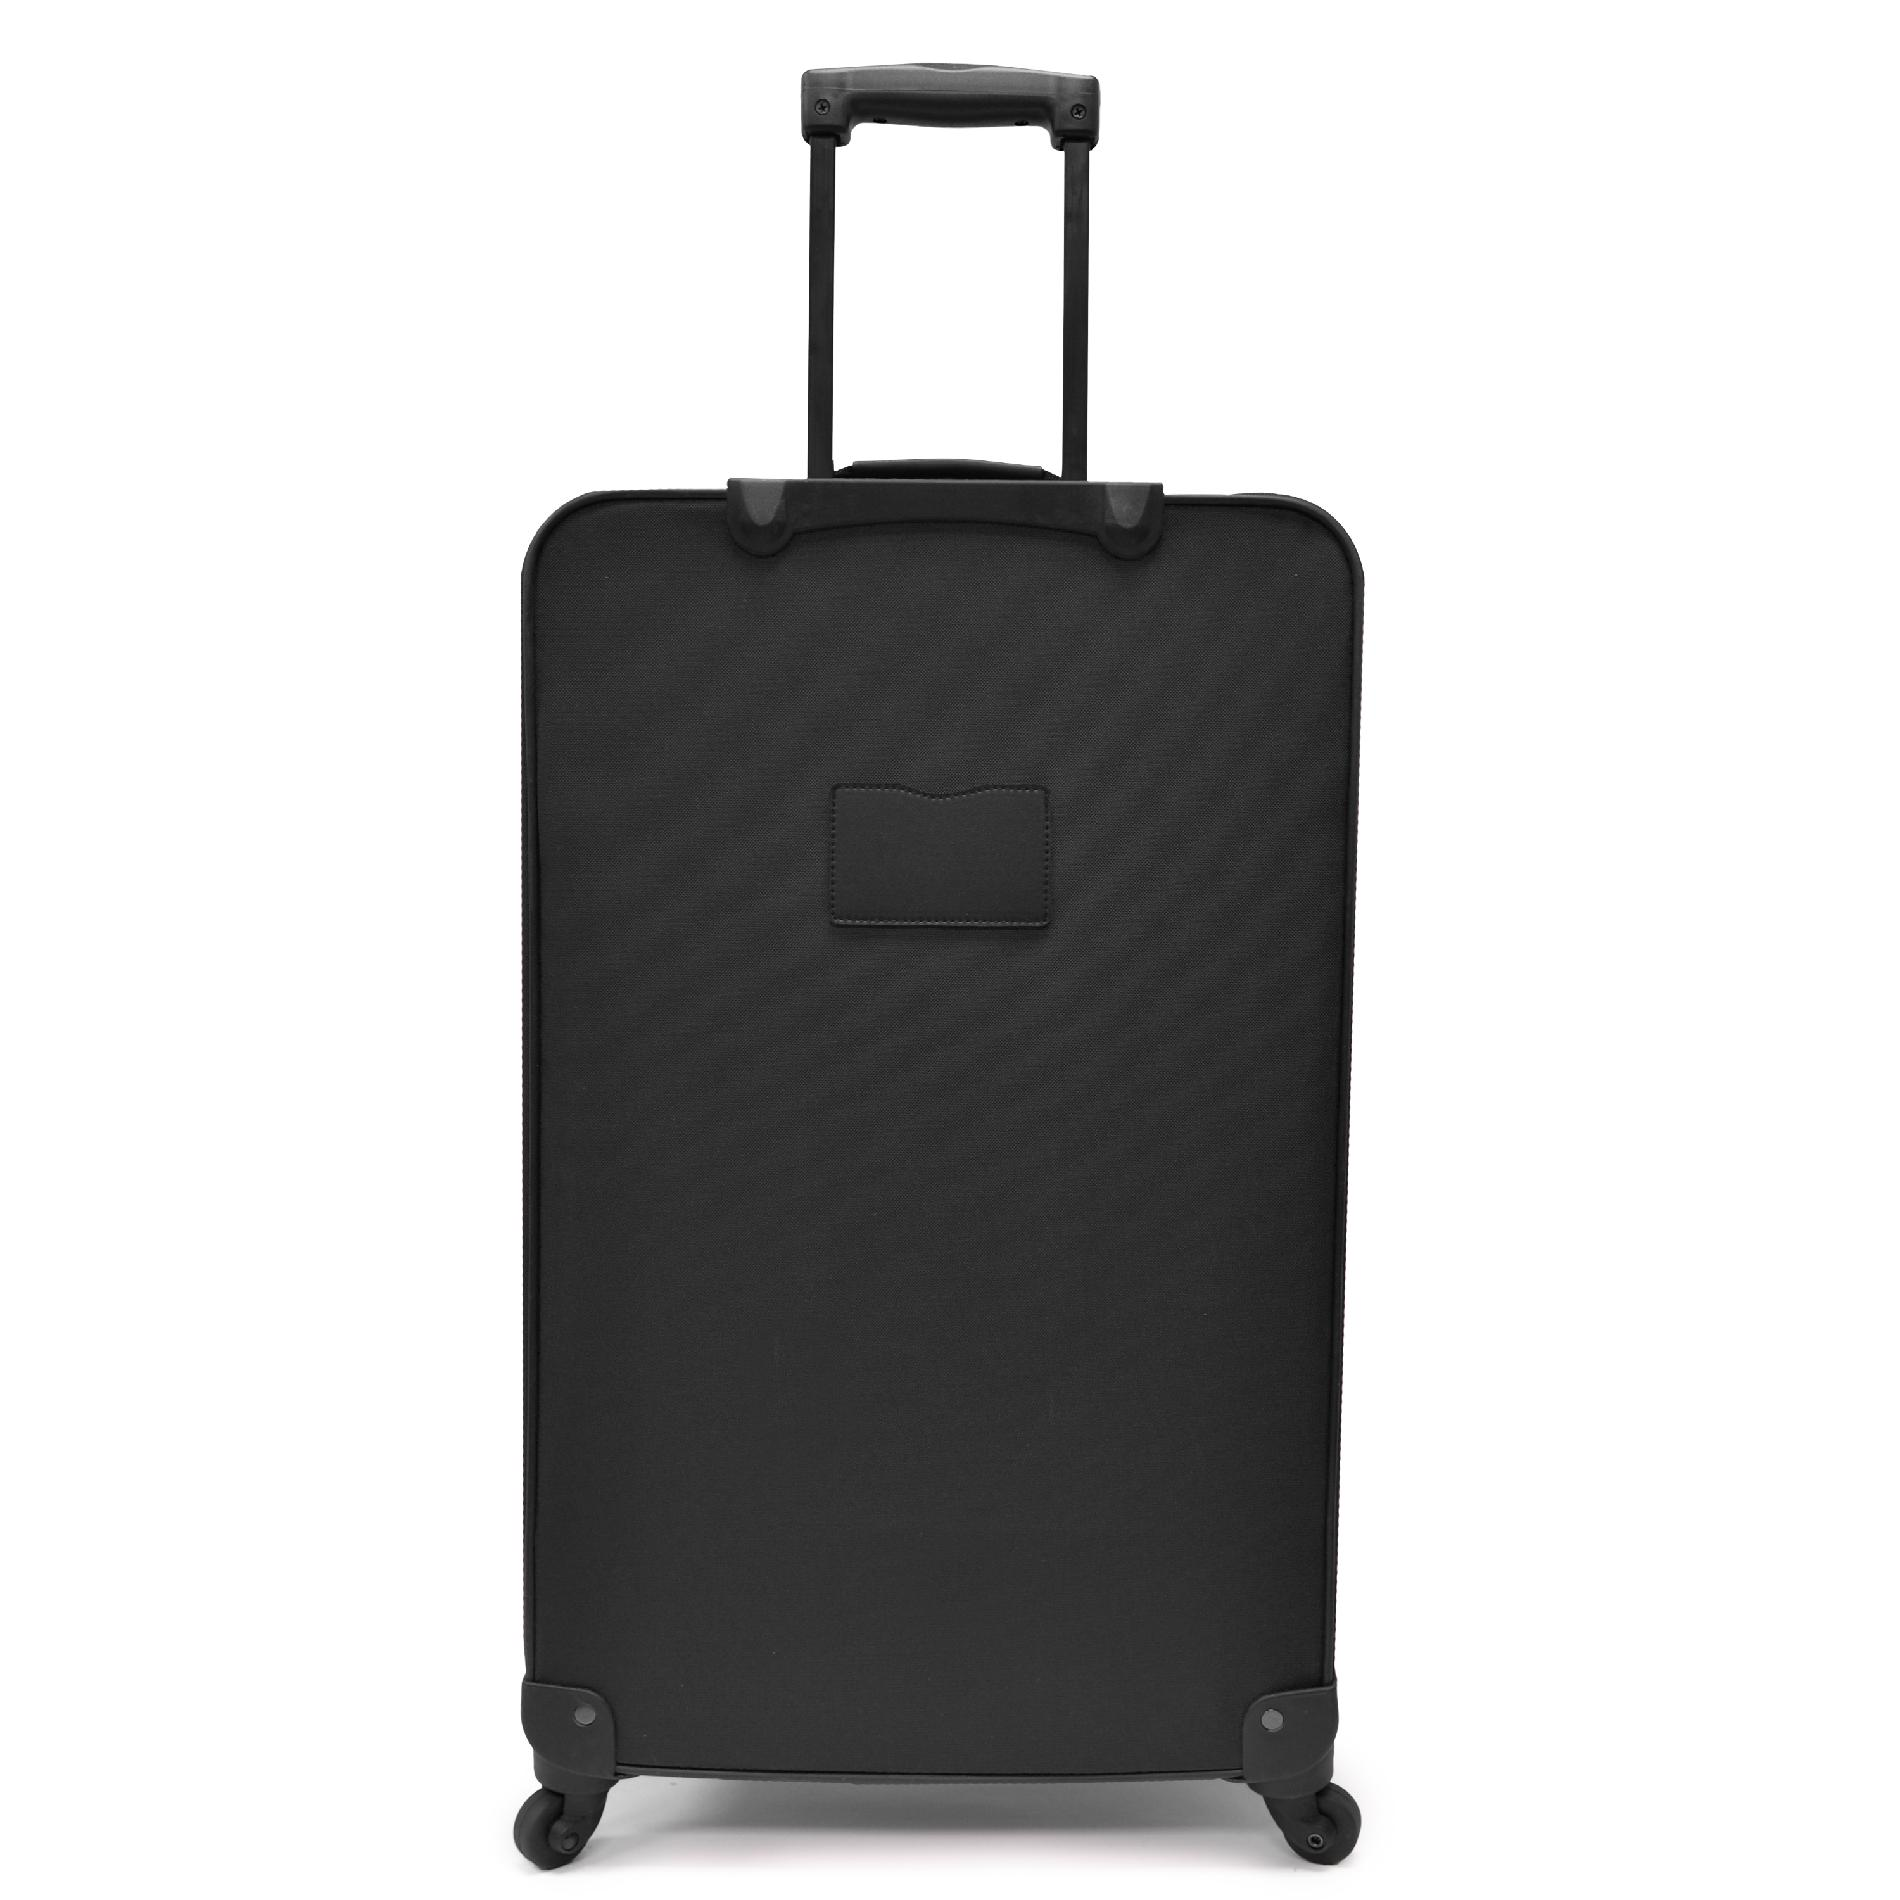 U.S. Traveler Charleville 4-Piece Spinner Luggage Set, Black